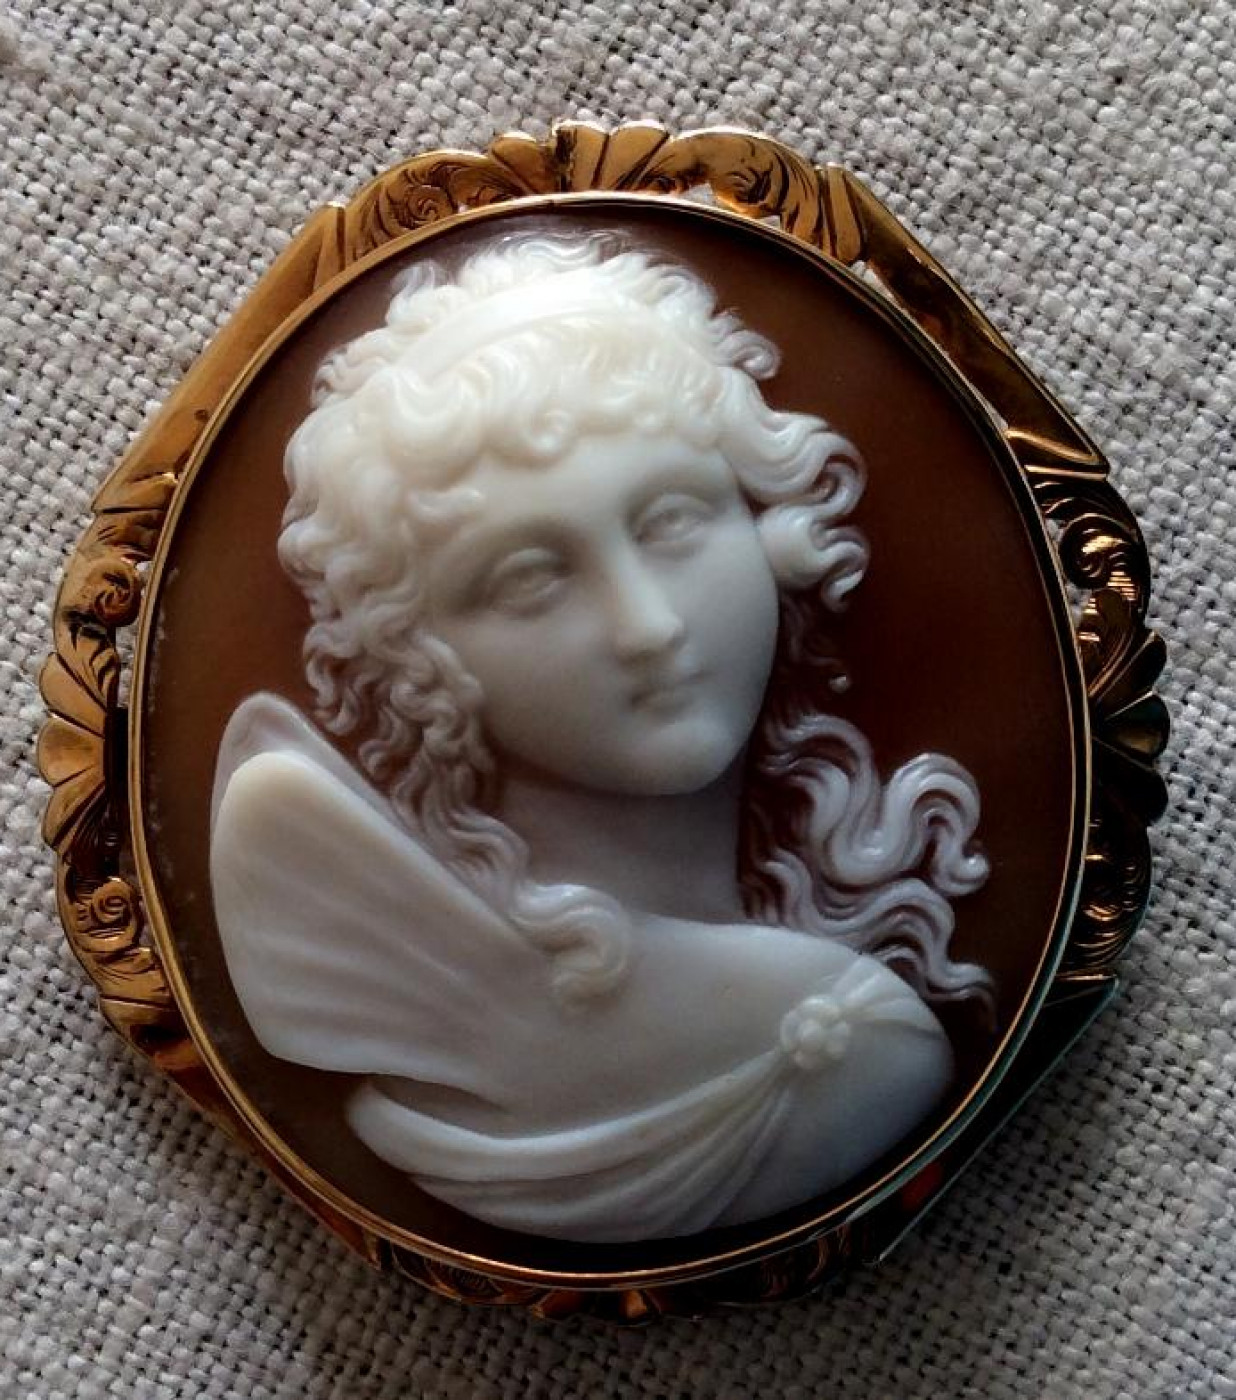 Rare Cameo of Psyche the Goddess of the Soul